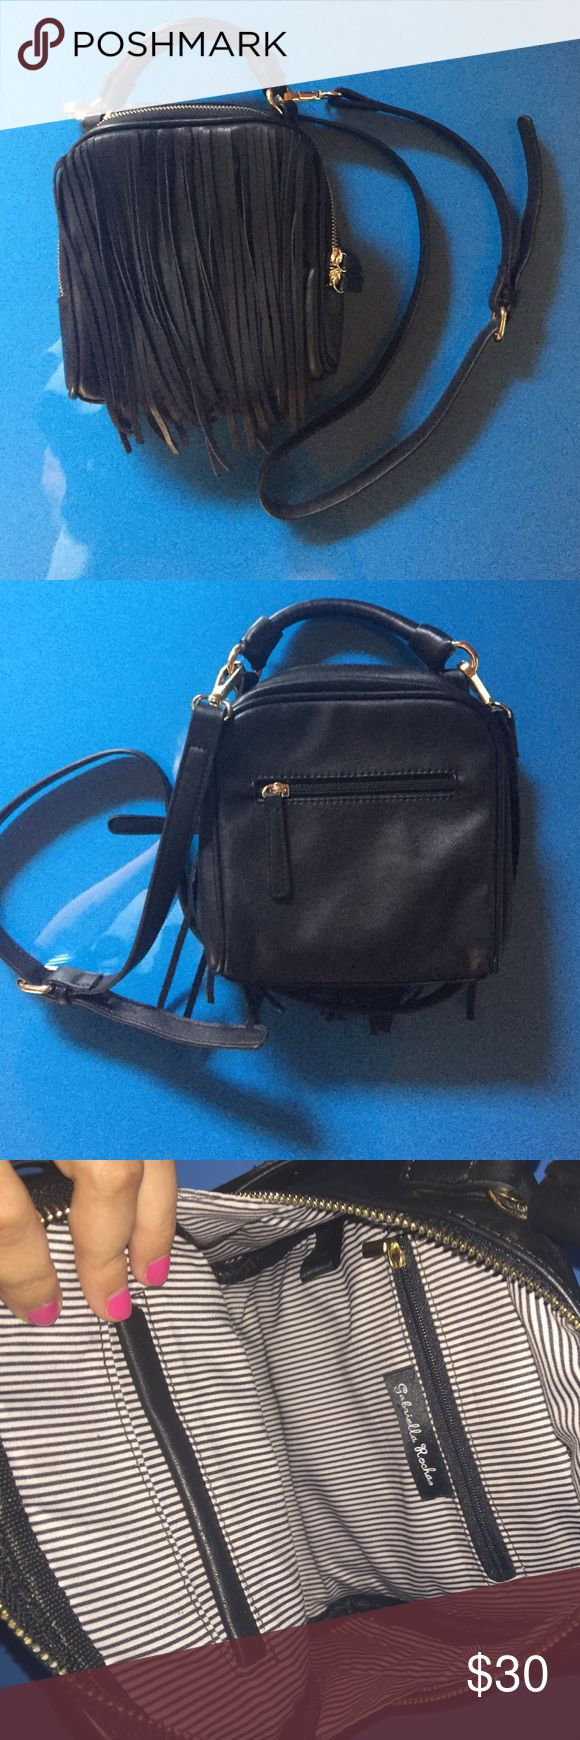 Gabriella Rocha Black Fringe Crossbody Brand new without tags! Perfect condition with absolutely no wear or damage. Gabriella Rocha Bags Crossbody Bags